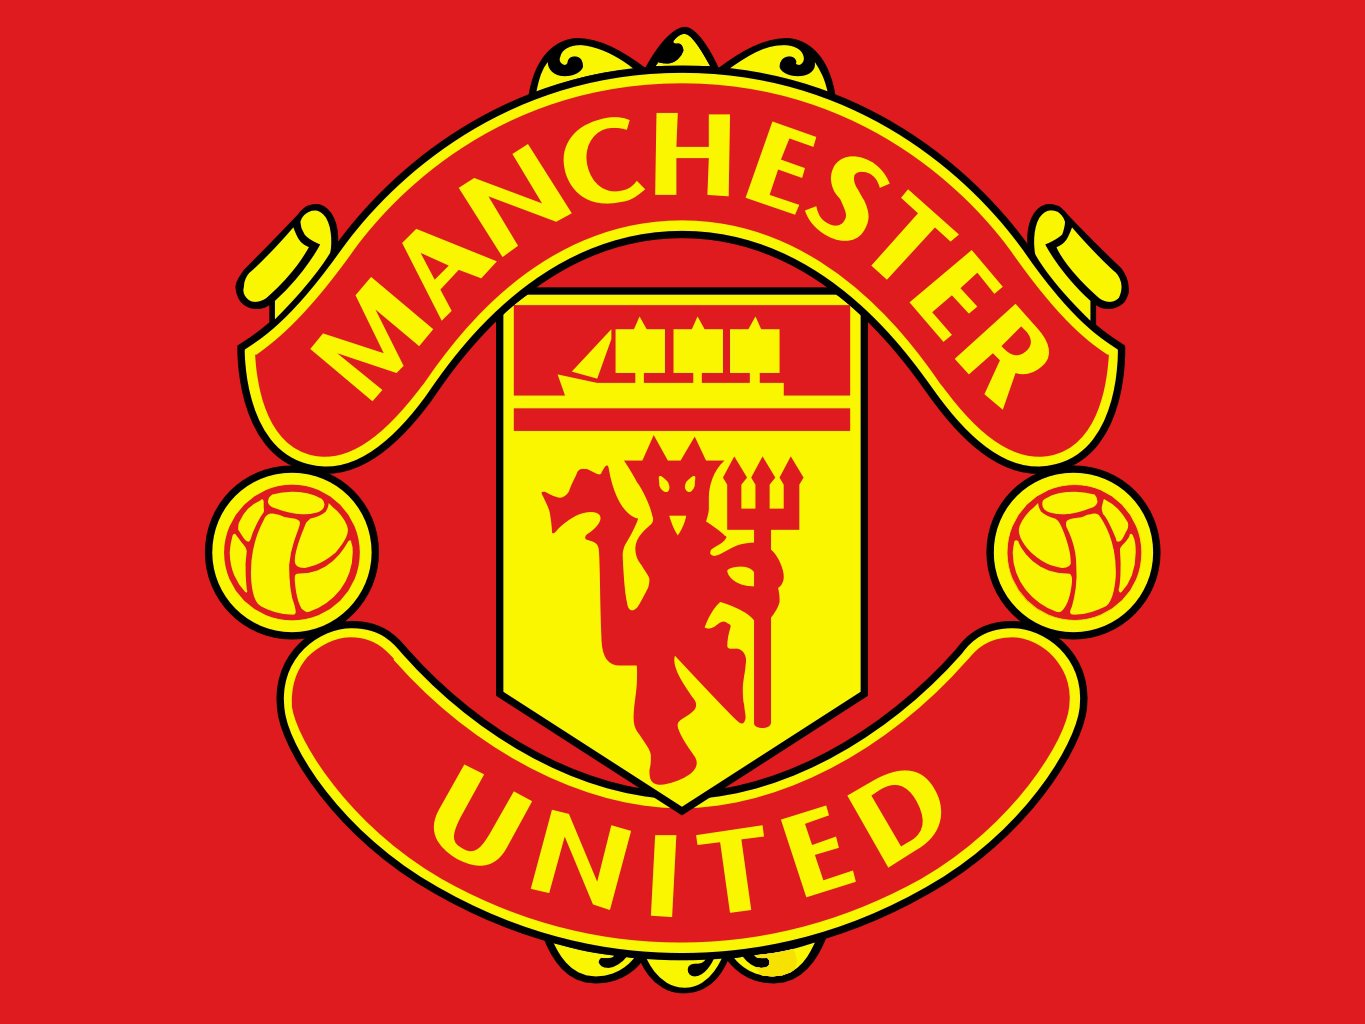 manchester united logo manchester united symbol meaning. Black Bedroom Furniture Sets. Home Design Ideas